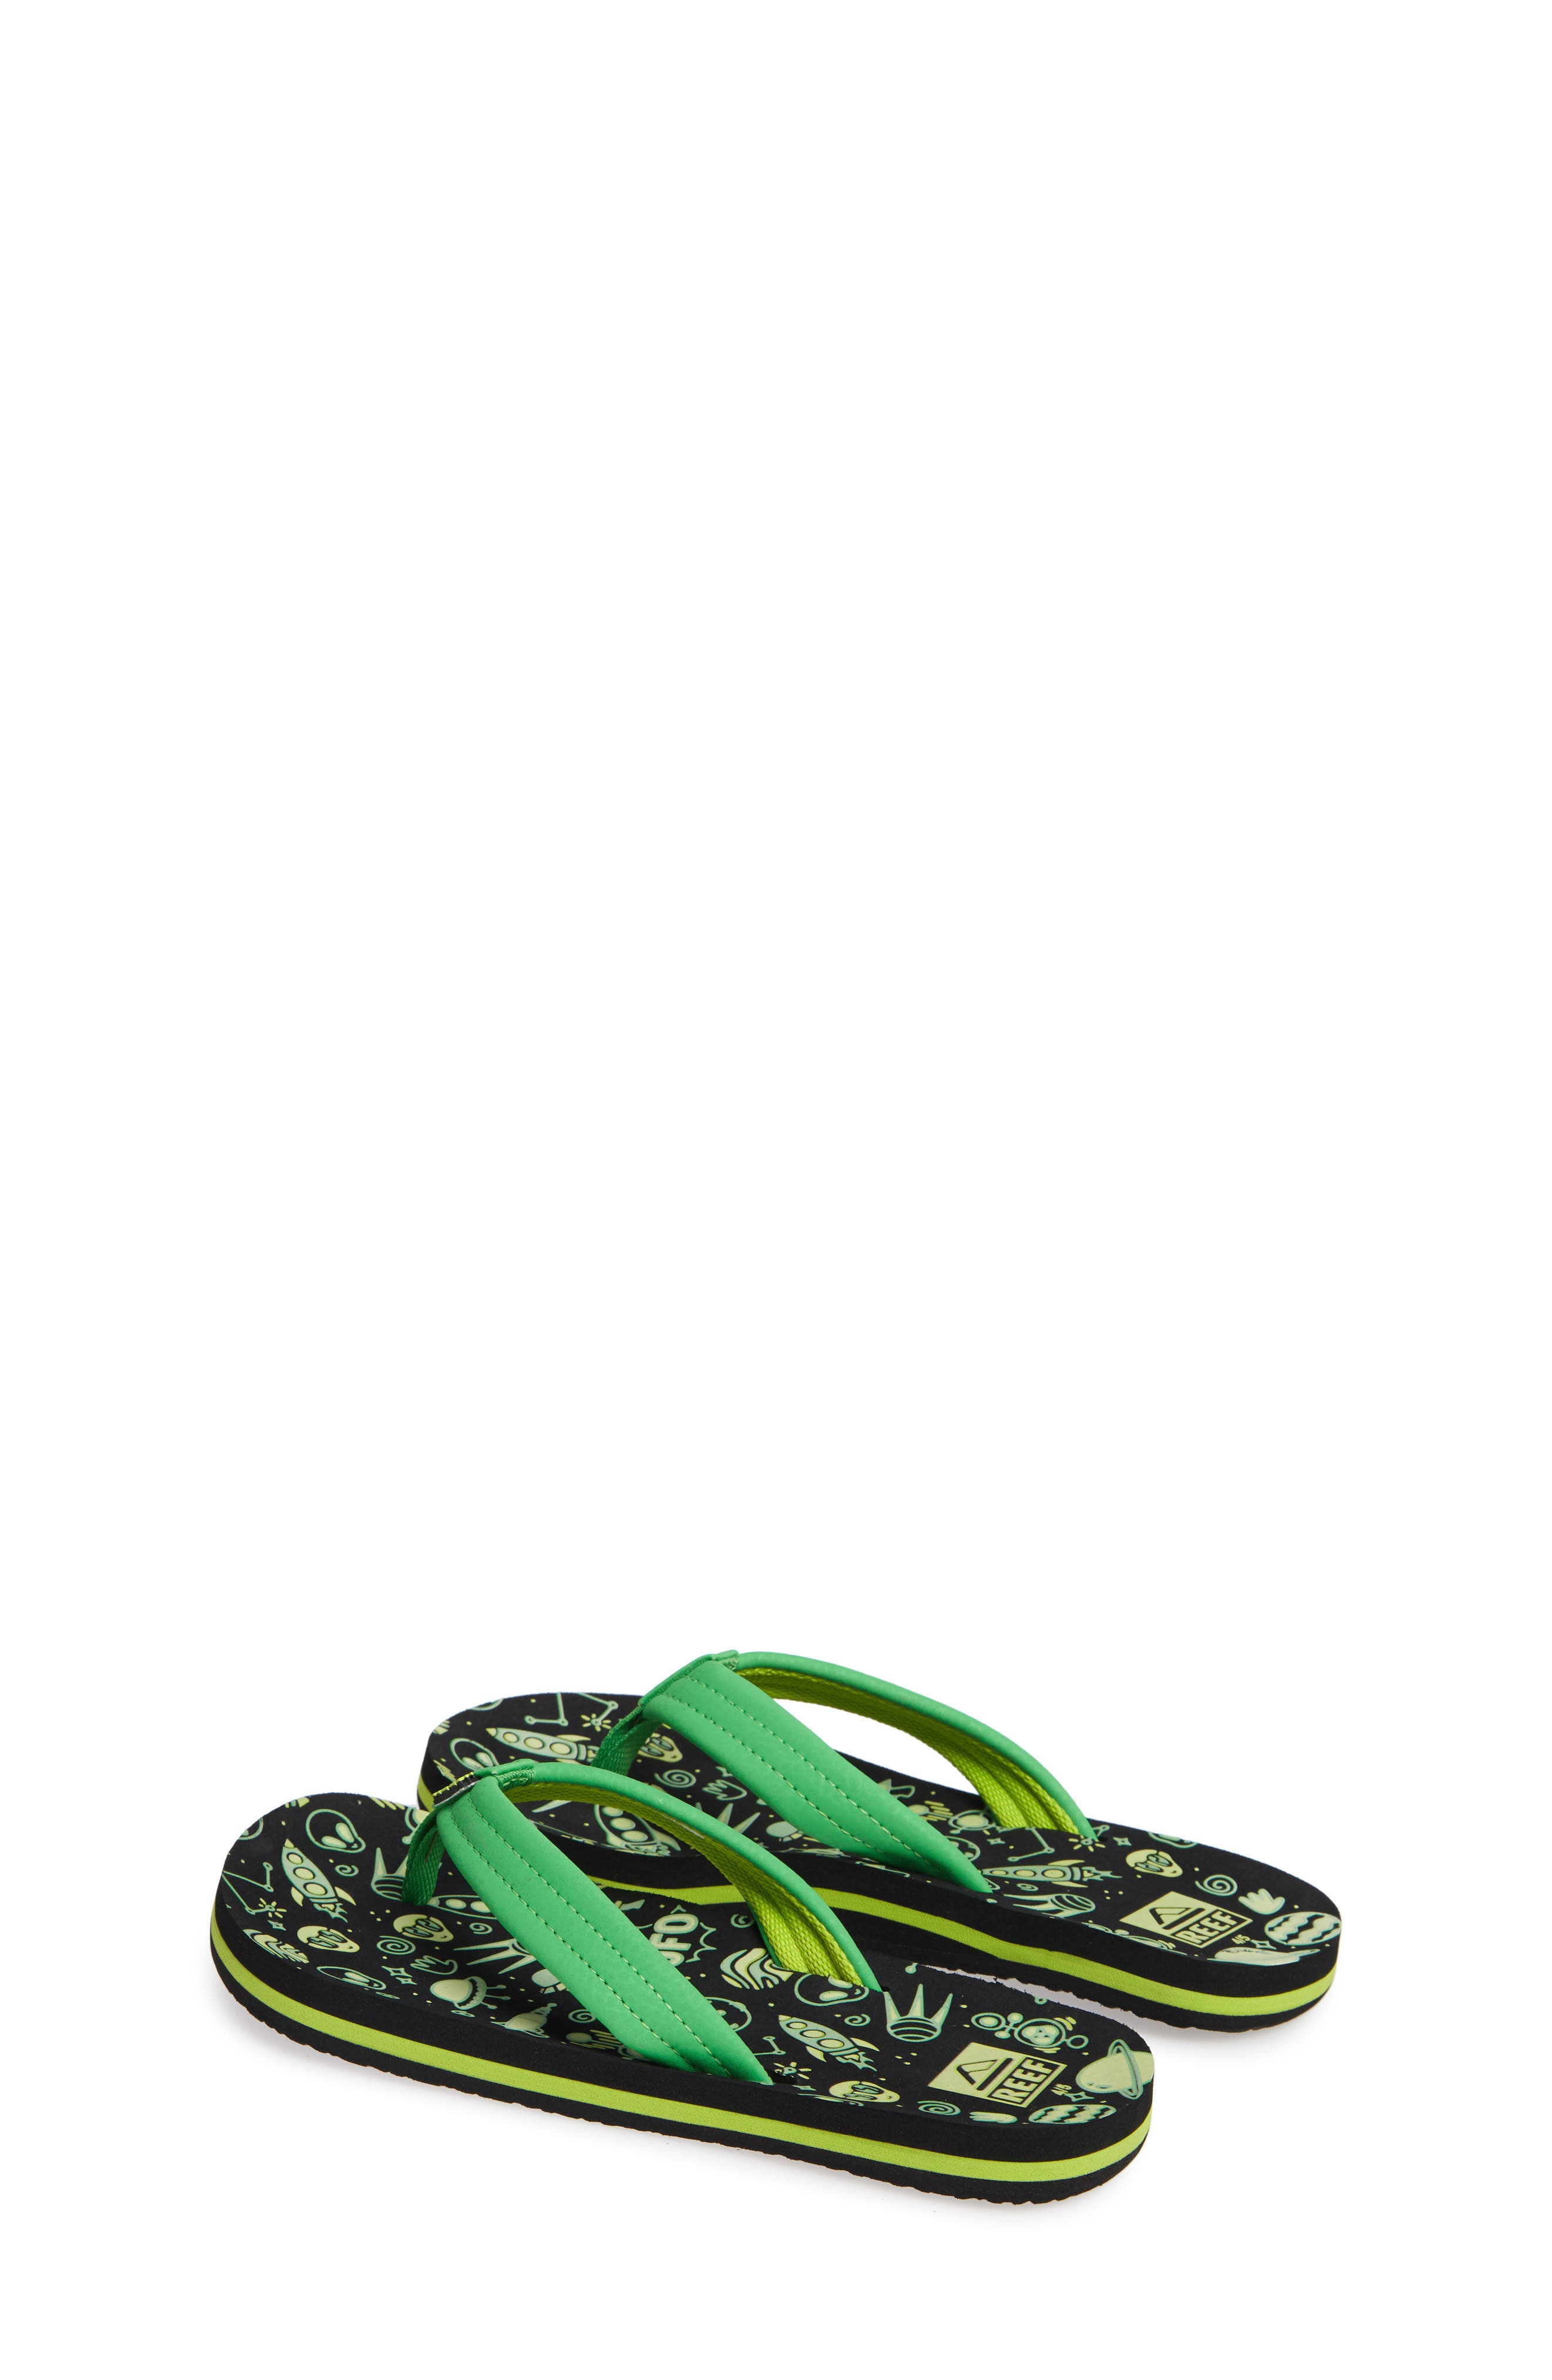 Ahi Glow in the Dark Flip Flop,                             Alternate thumbnail 3, color,                             GREEN